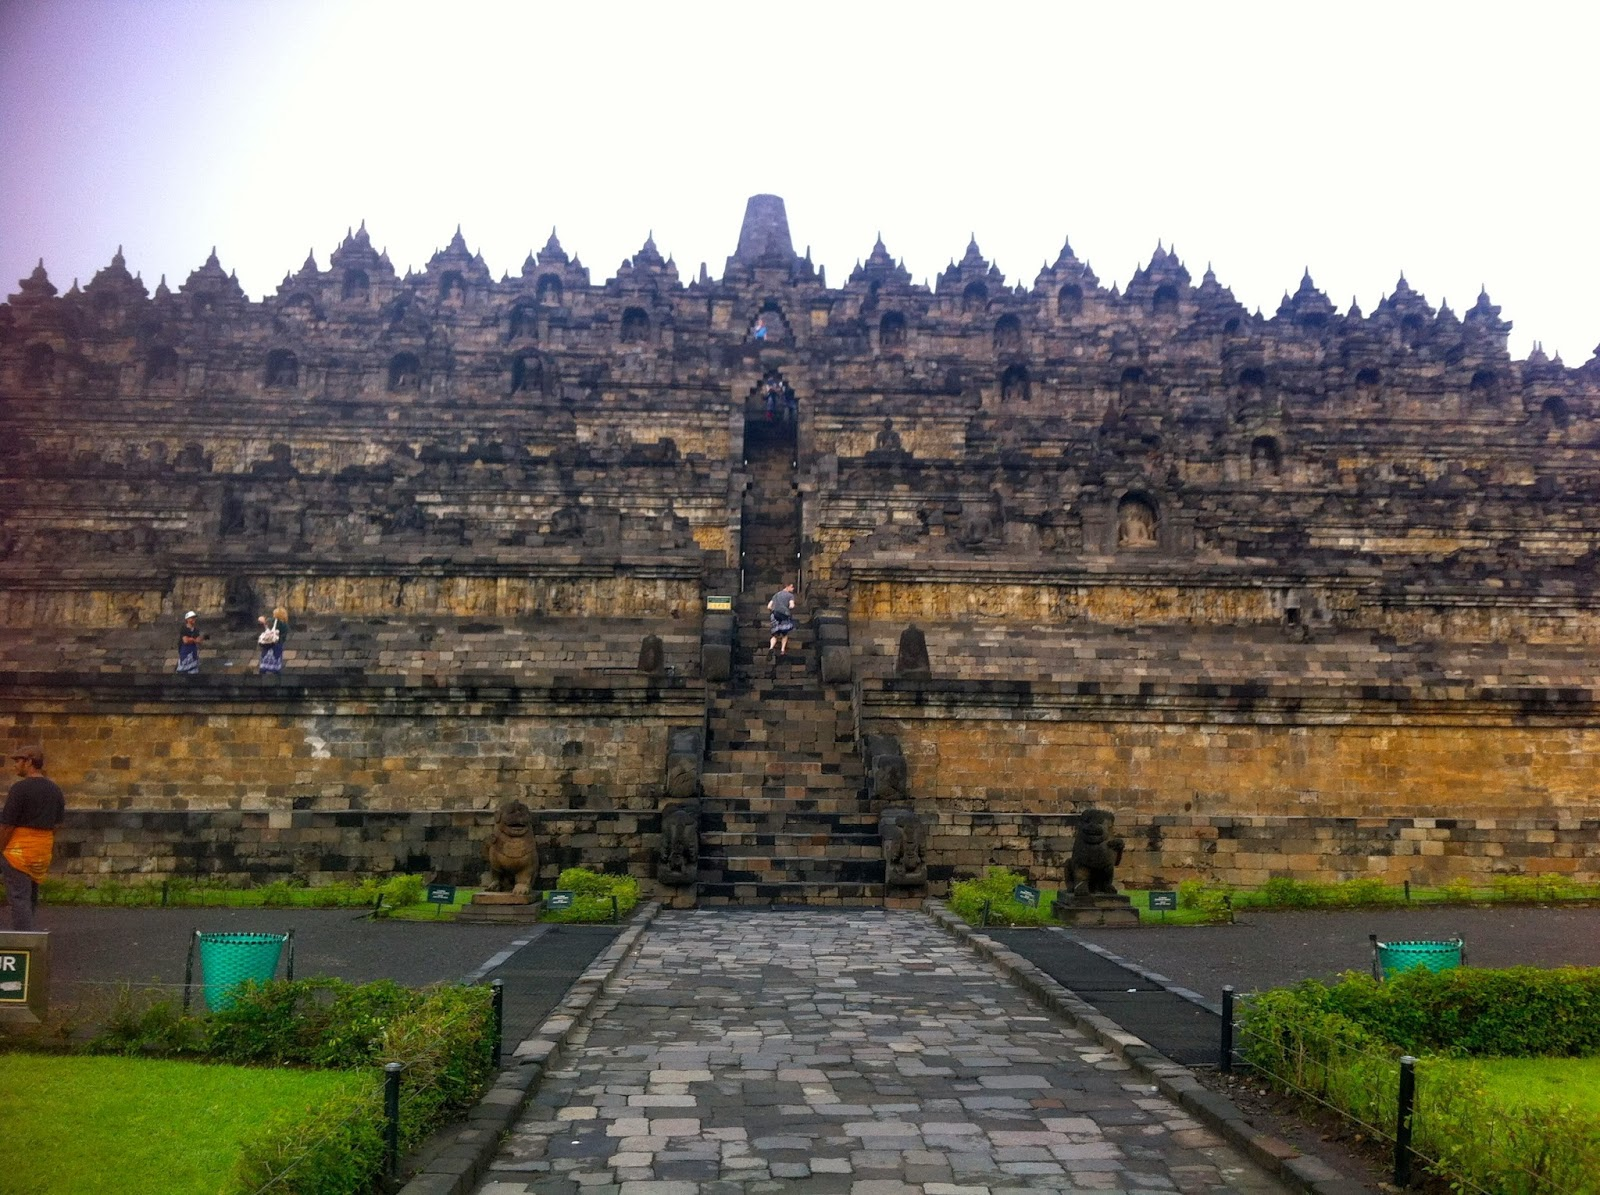 Borodubur Buddhist temple in Java, Indonesia